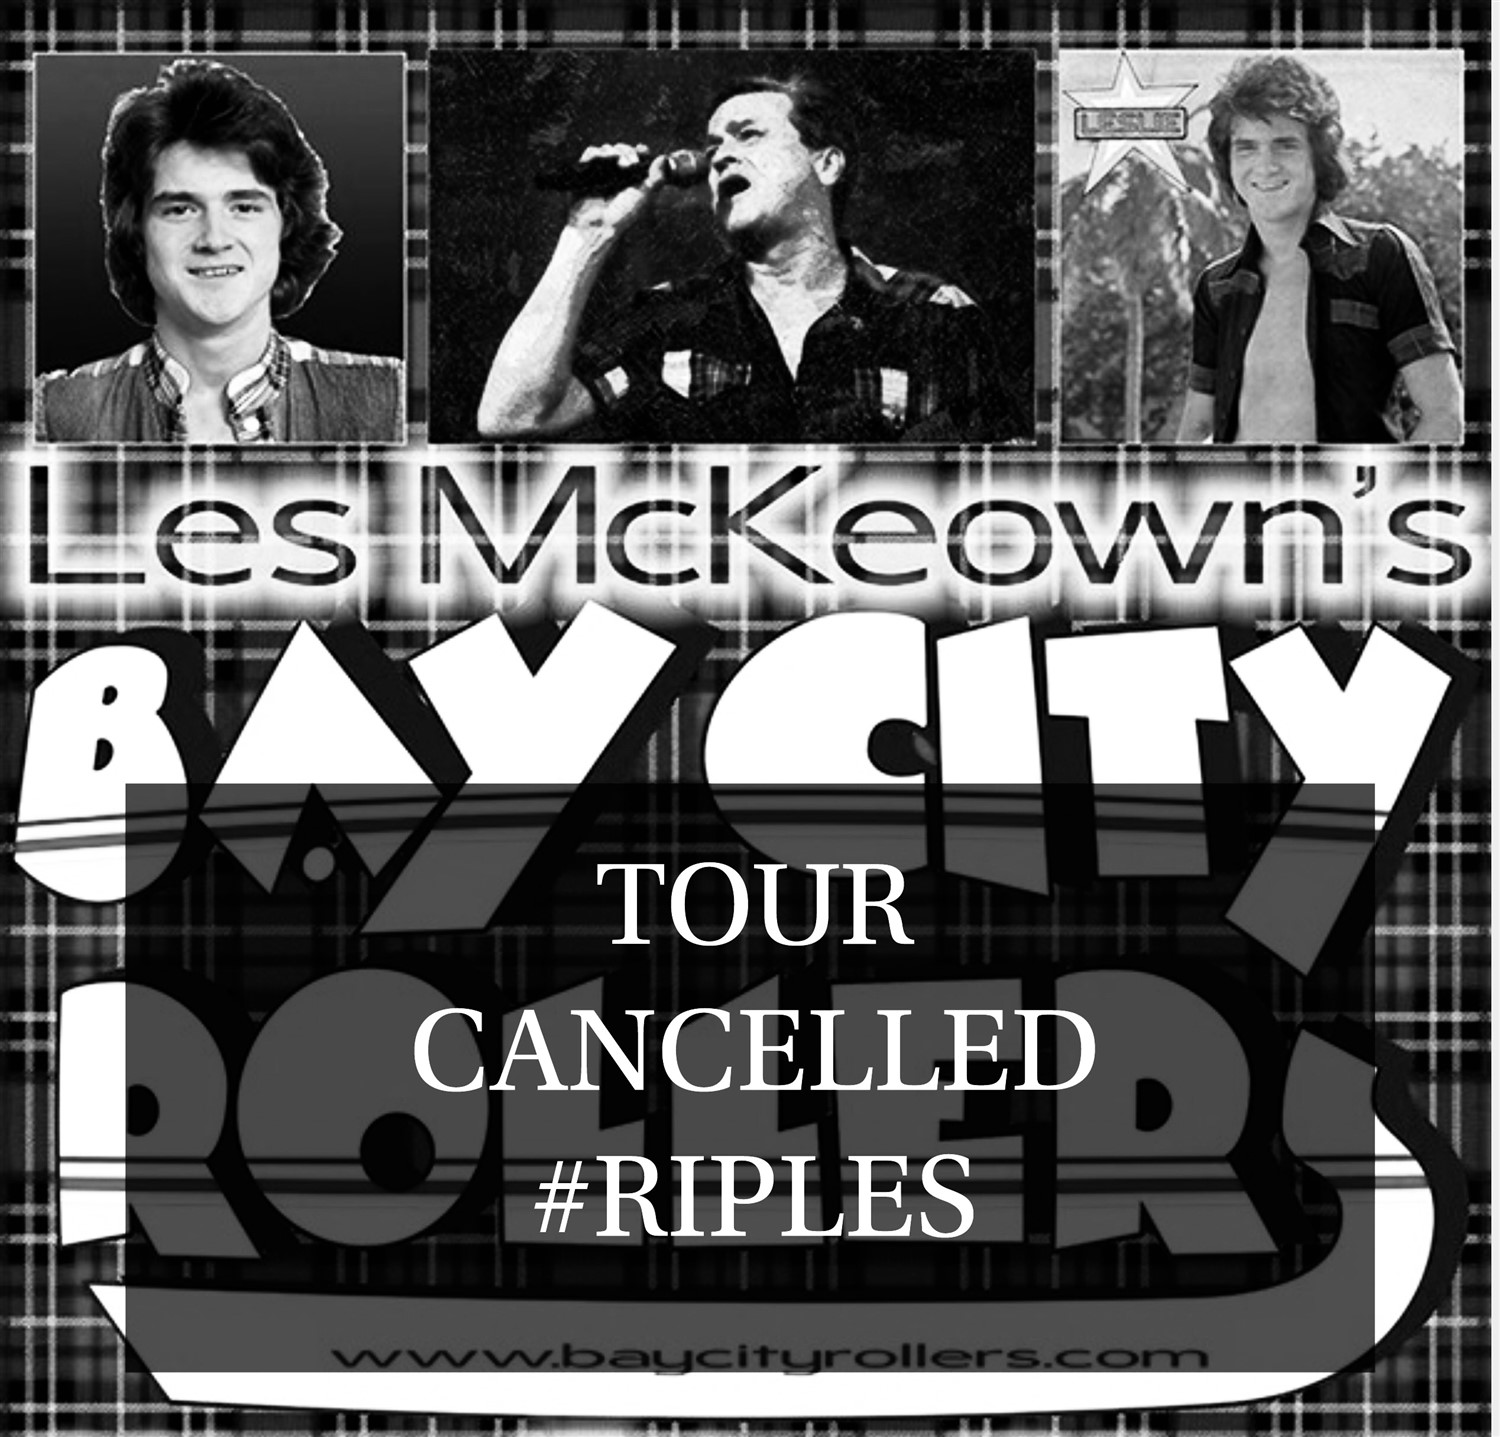 Les McKeown's Bay City Rollers at Riva Showbar, Preston,Lancs Plus Aftershow DJ Music Set on Oct 08, 19:30@Riva Showbar Preston - Buy tickets and Get information on RS PROMOTIONS